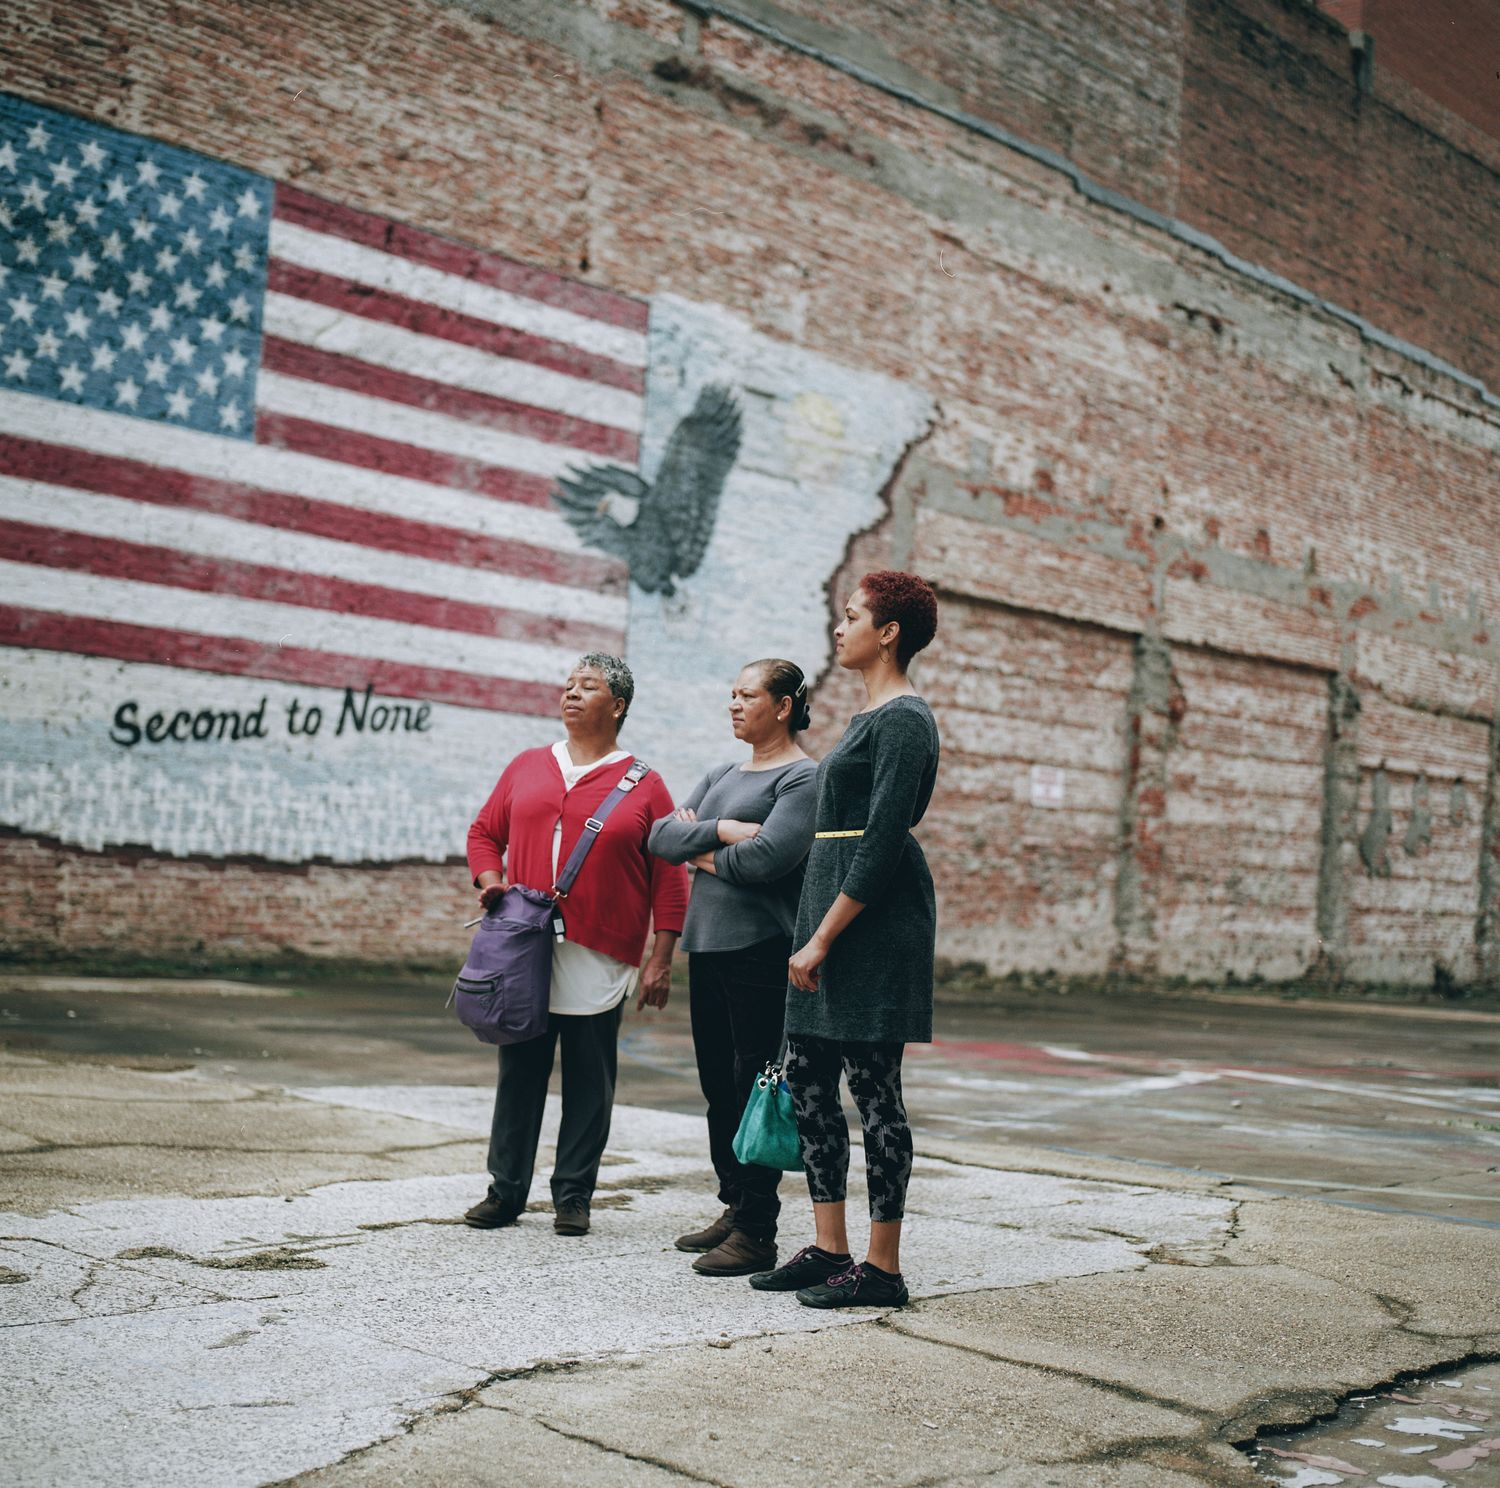 Shirah Dedman, Phoebe Dedman, and Luz Myles visiting Shreveport, Louisiana, where in 1912 their relative Thomas Miles, Sr., was lynched. 2017. (Photo: Rog Walker and Bee Walker for the Equal Justice Initiative)